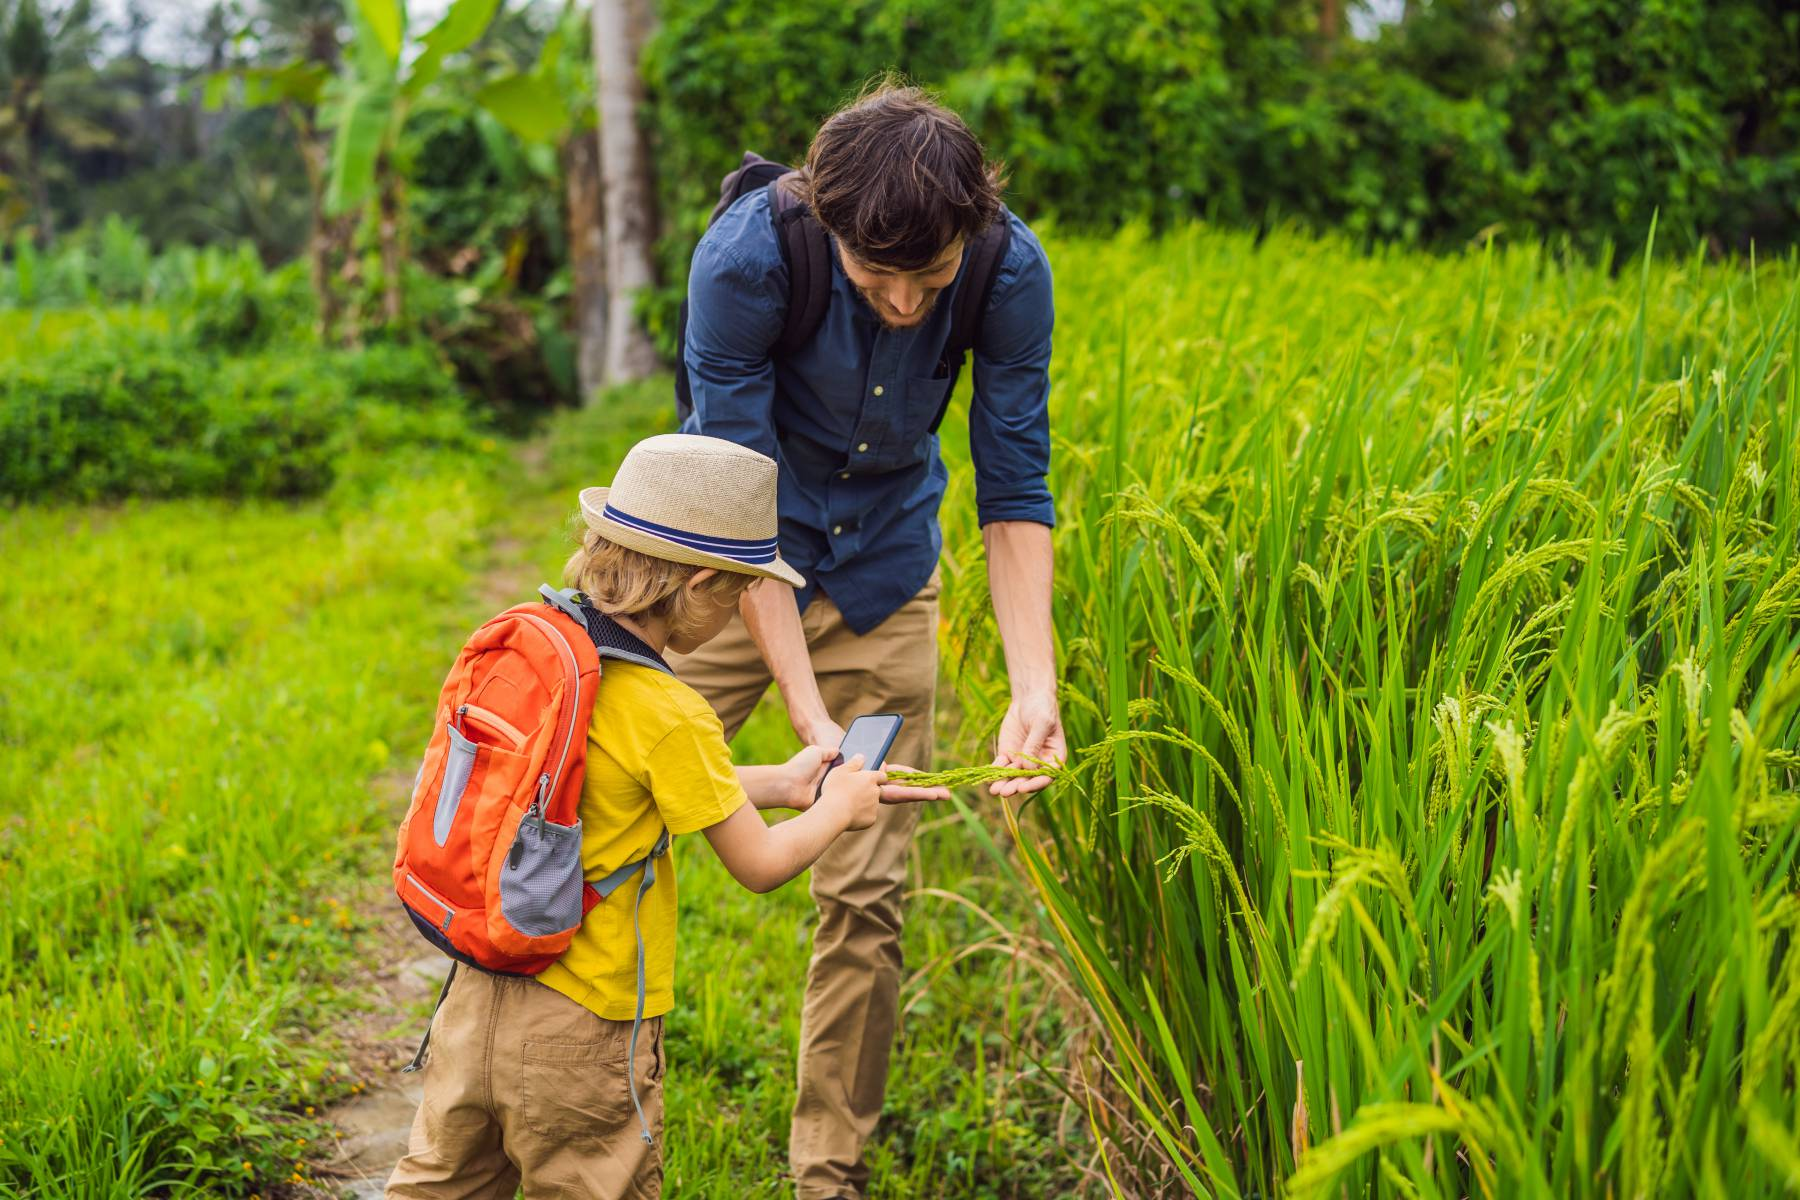 Man in navy blue shirt showing child in yellow shirt with a sun hat how to forage